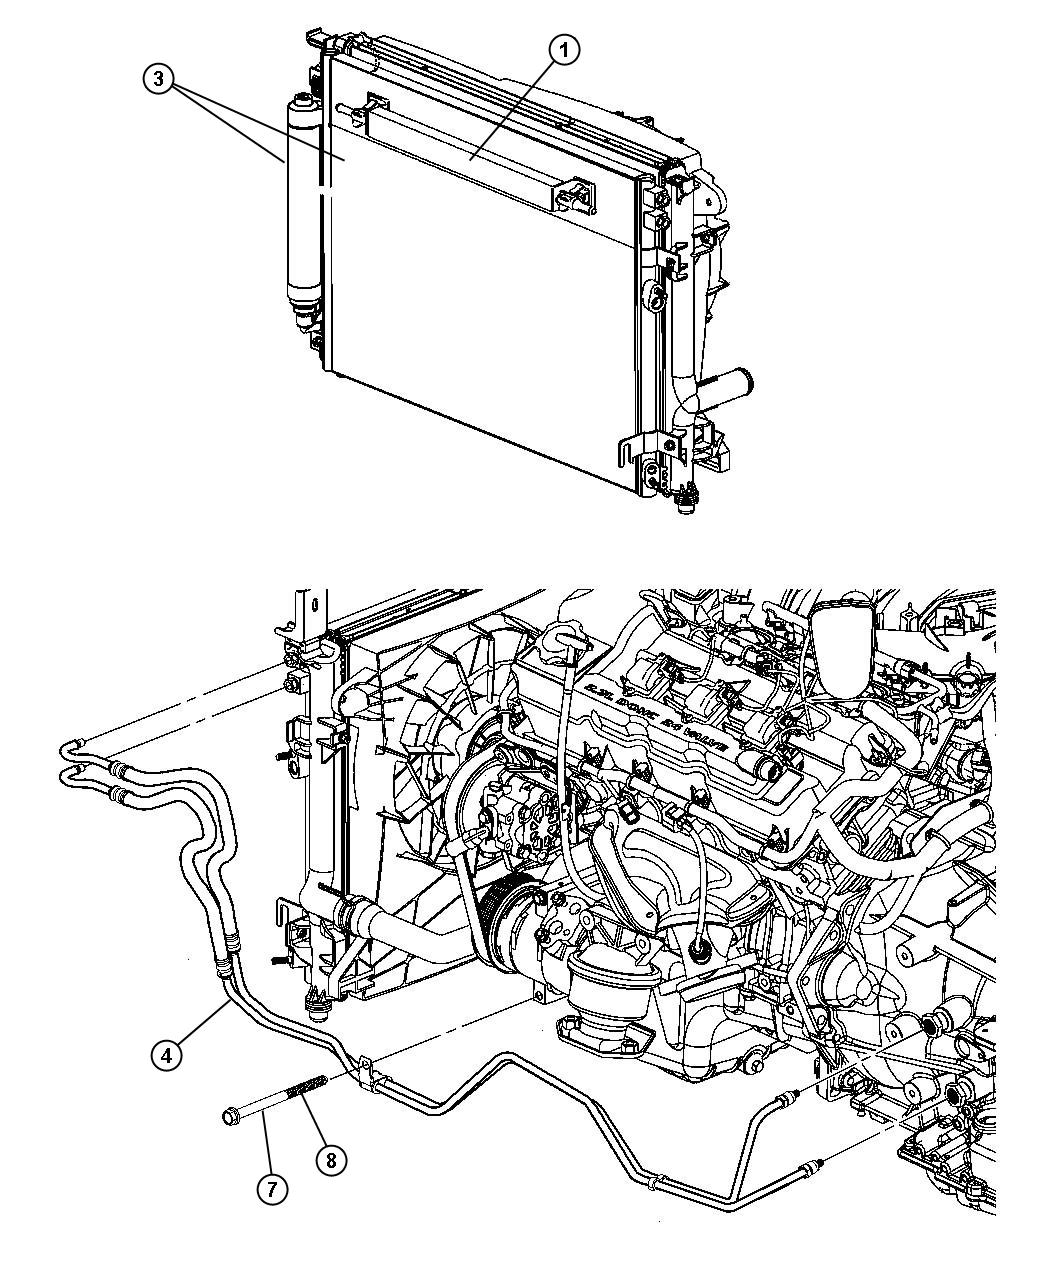 Dodge magnum 5 7 engine diagram on chrysler pacifica wiring diagram